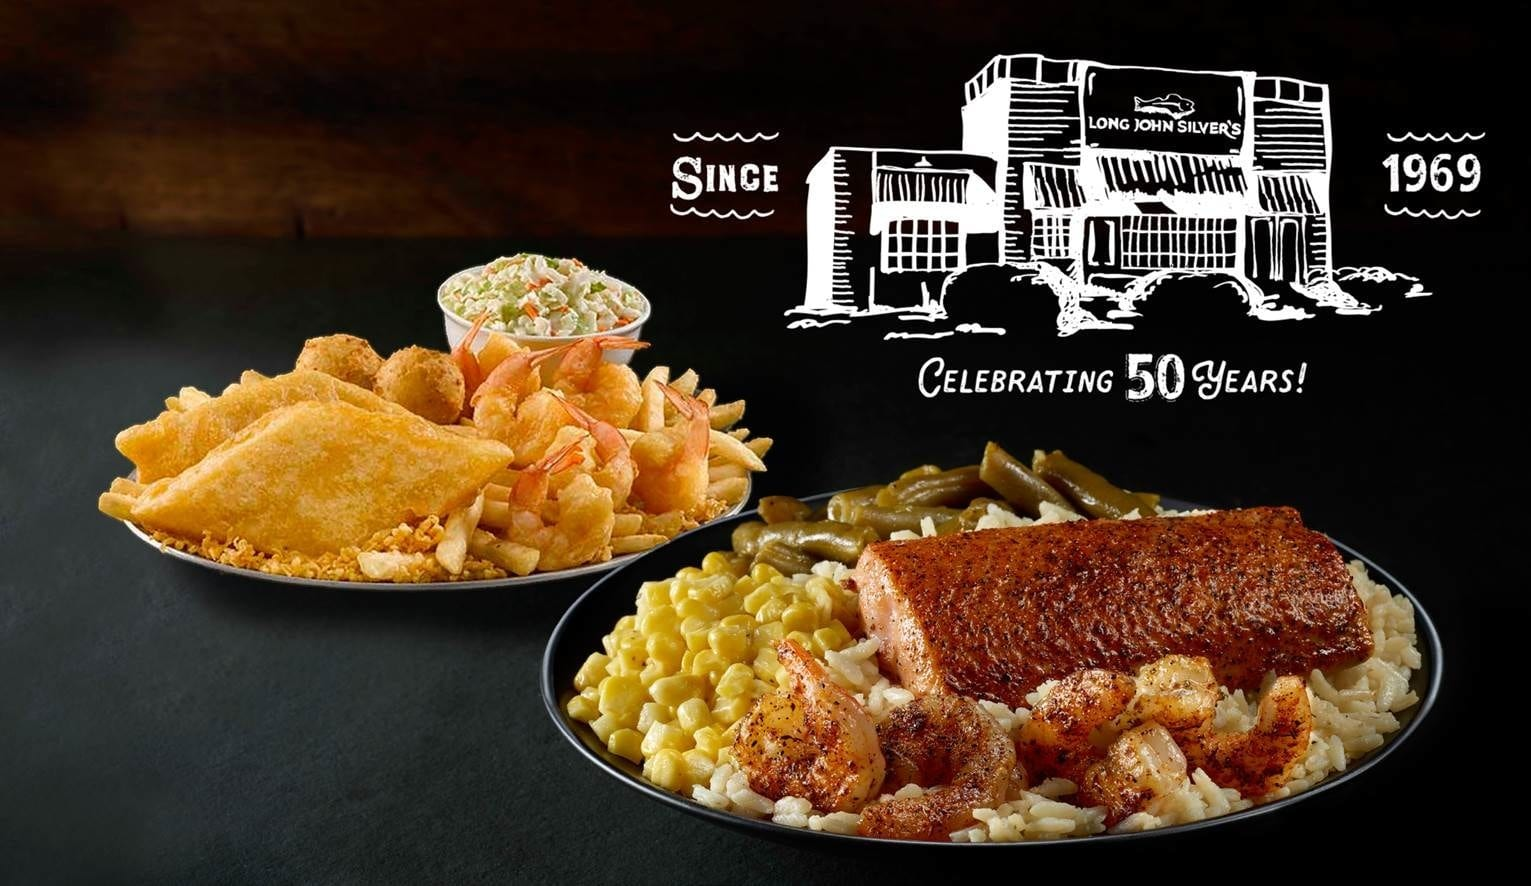 Business News: Long John Silver's Celebrates 50th Anniversary